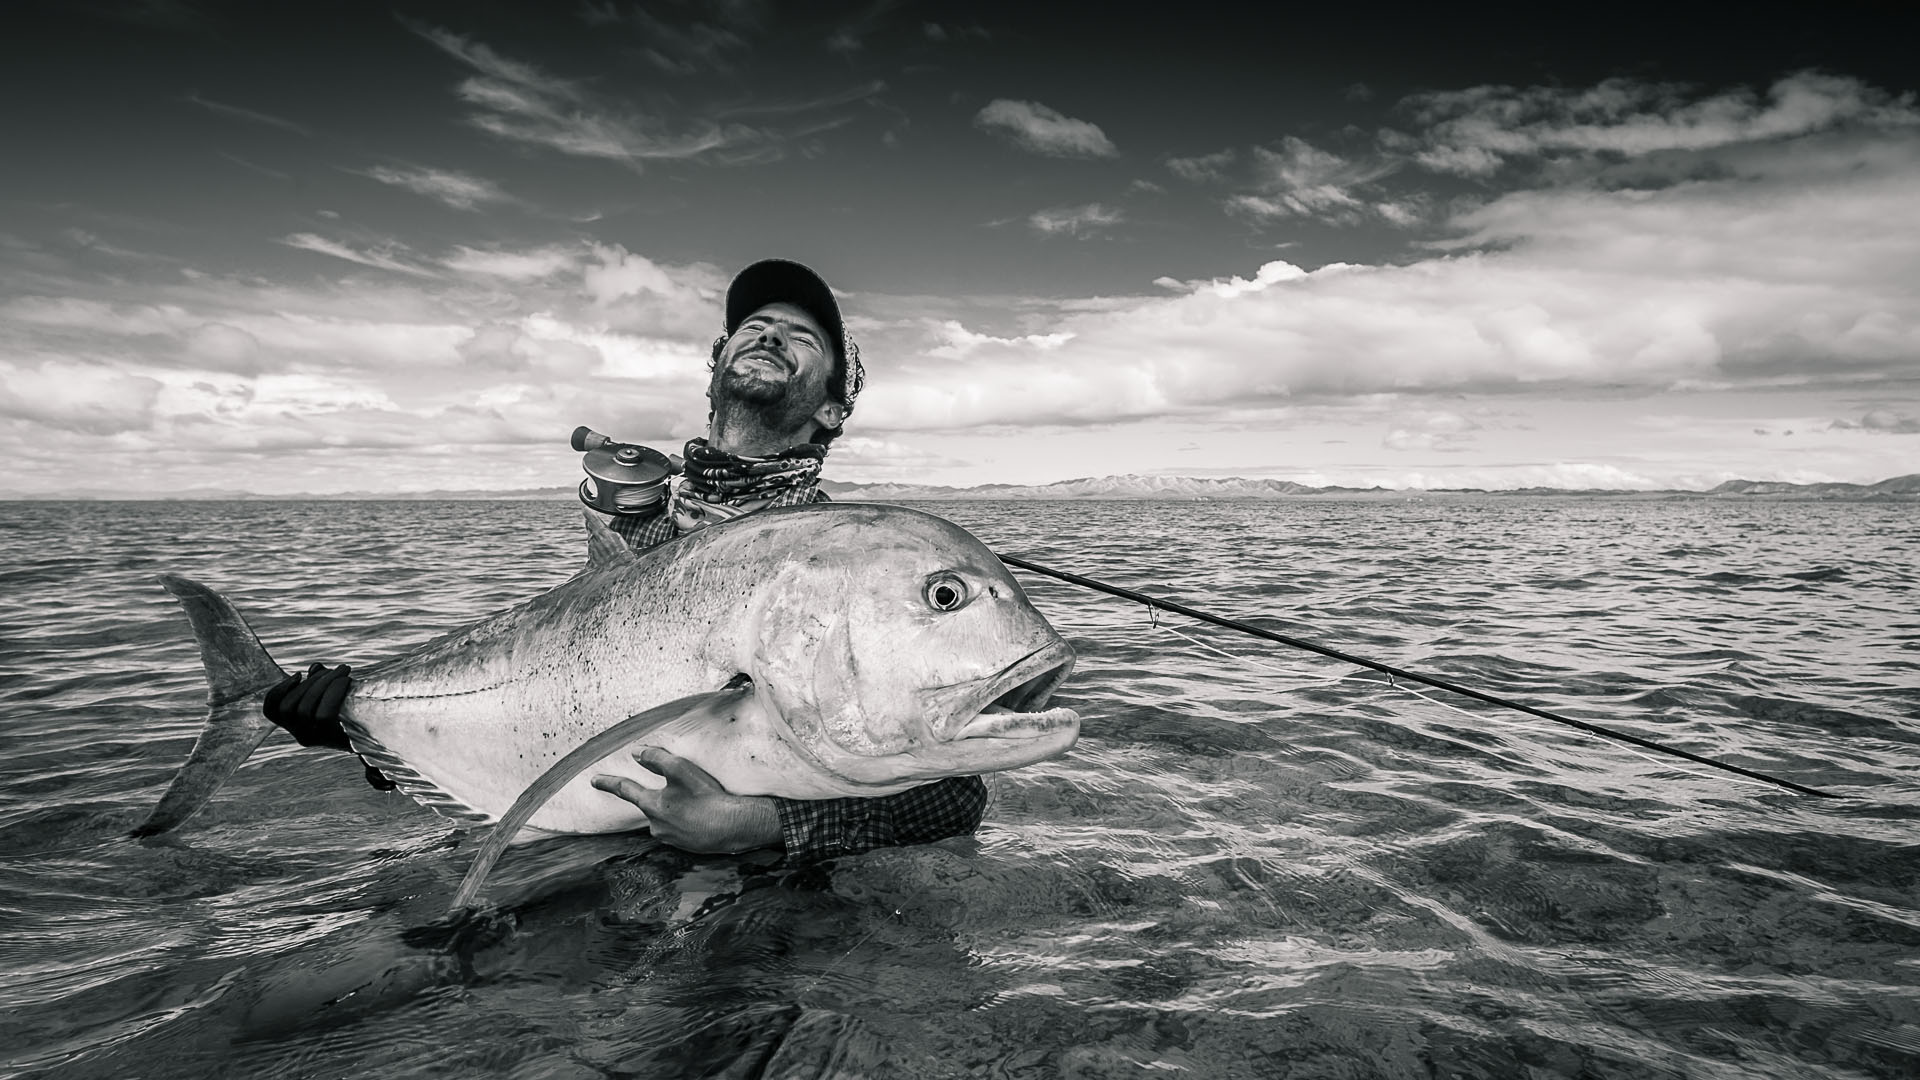 P che mouche damien brouste for Fly fishing photography